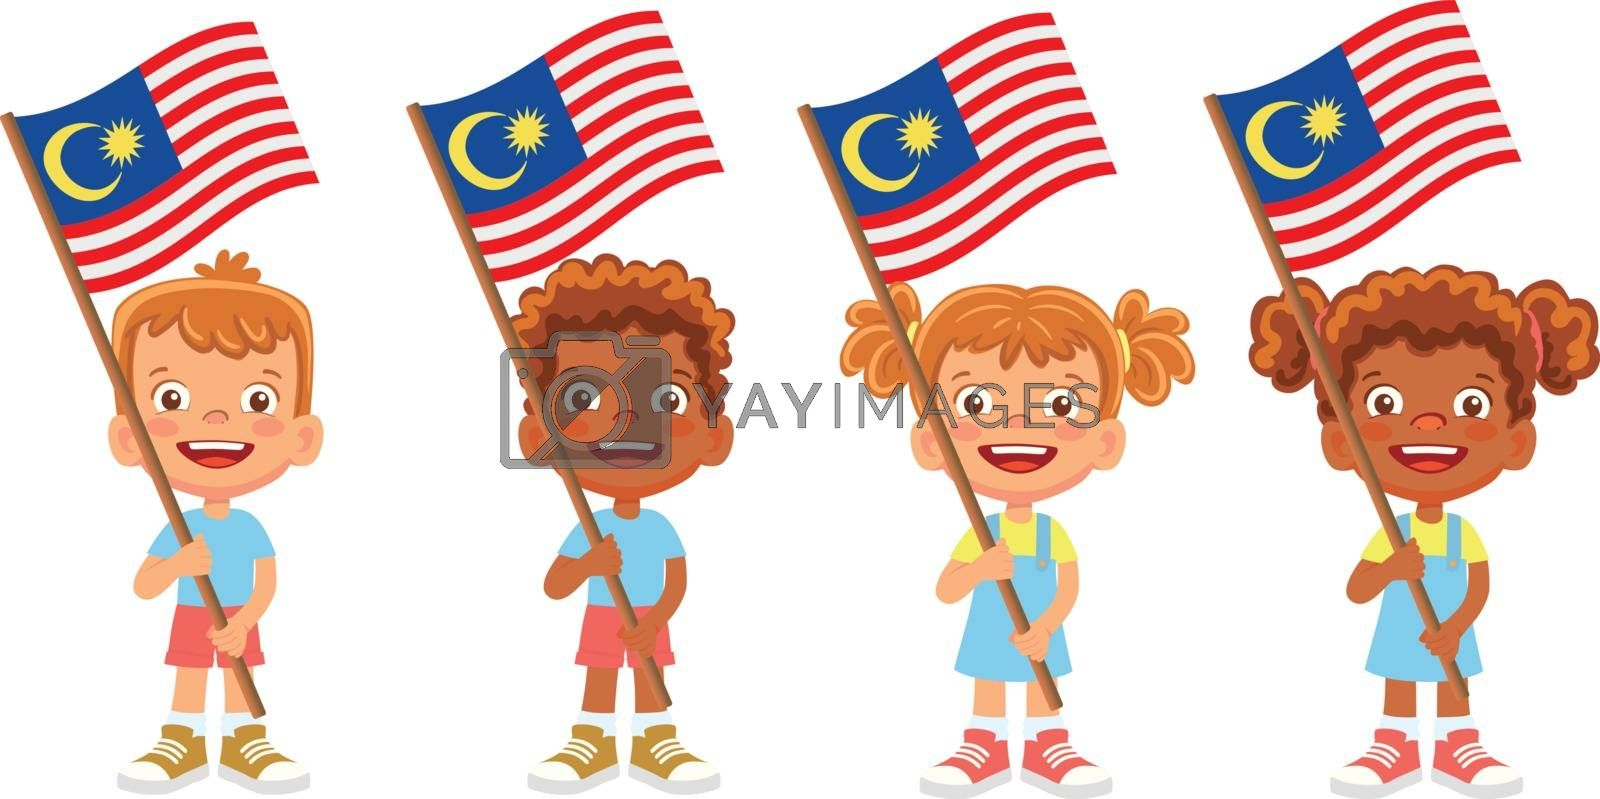 Malaysia flag in hand. Children holding flag. National flag of Malaysia vector